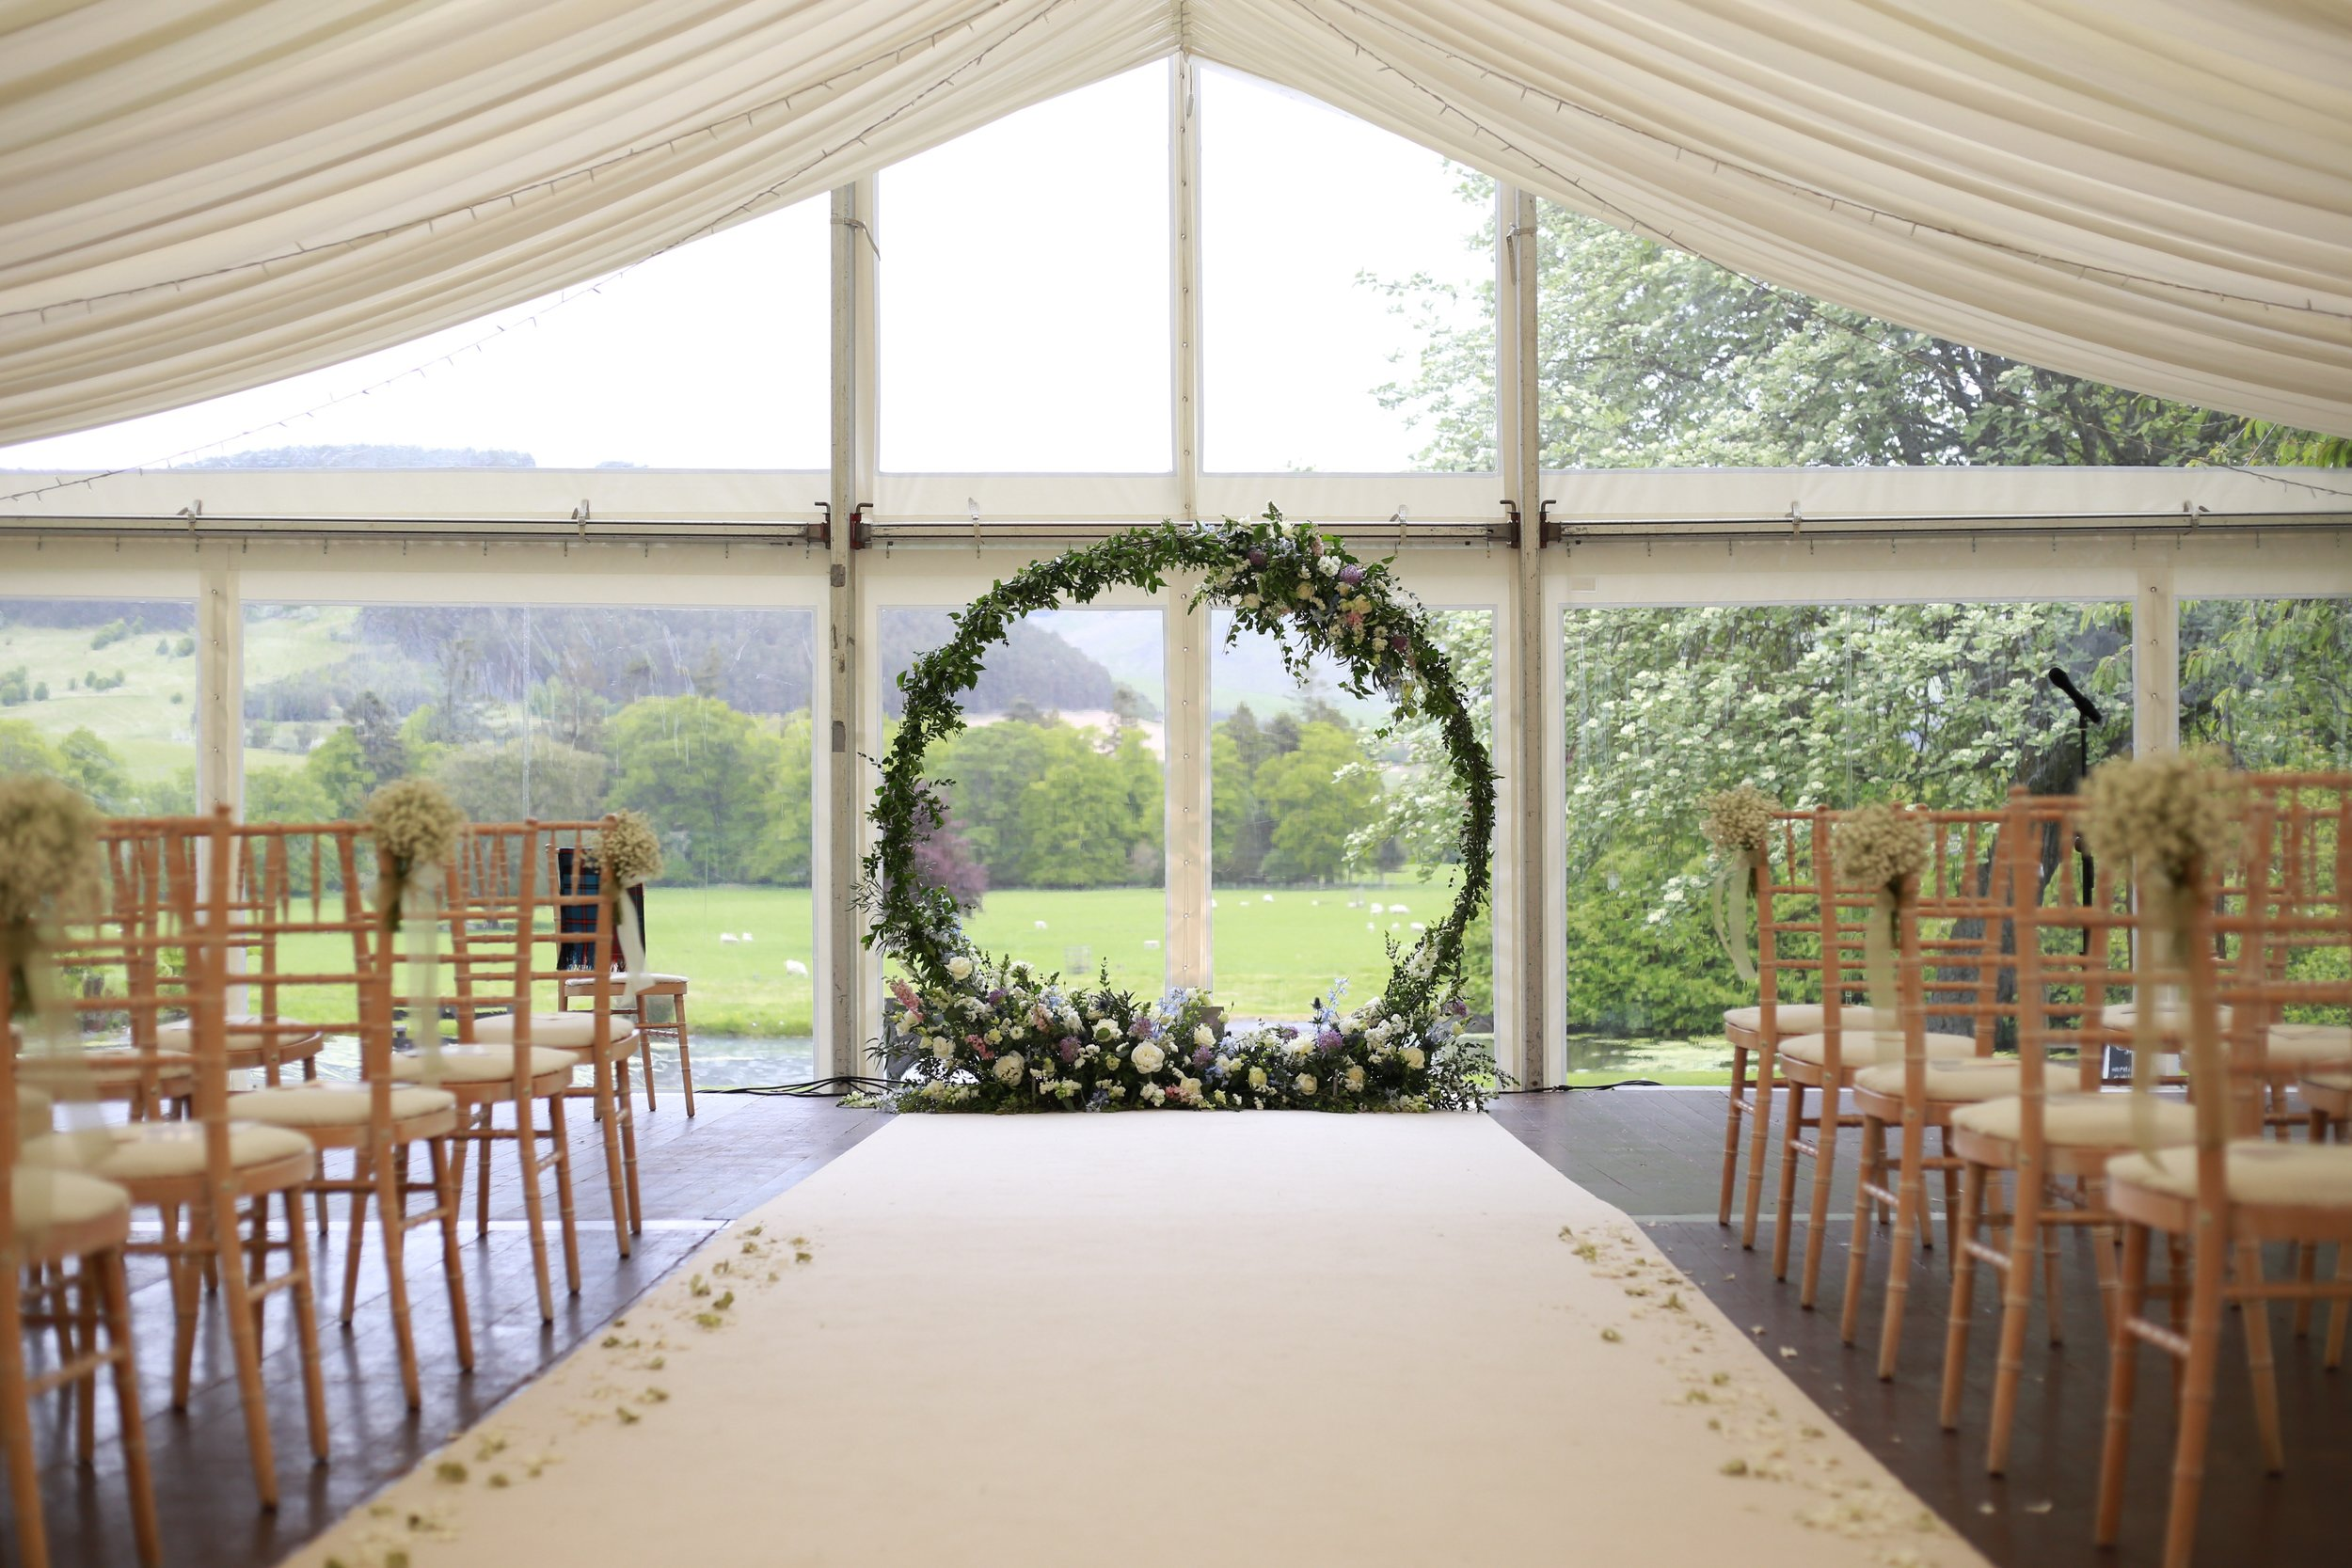 A modern twist on a floral arch, the moon gate! At Kailzie Gardens, Peebles | Photographed by Stems.